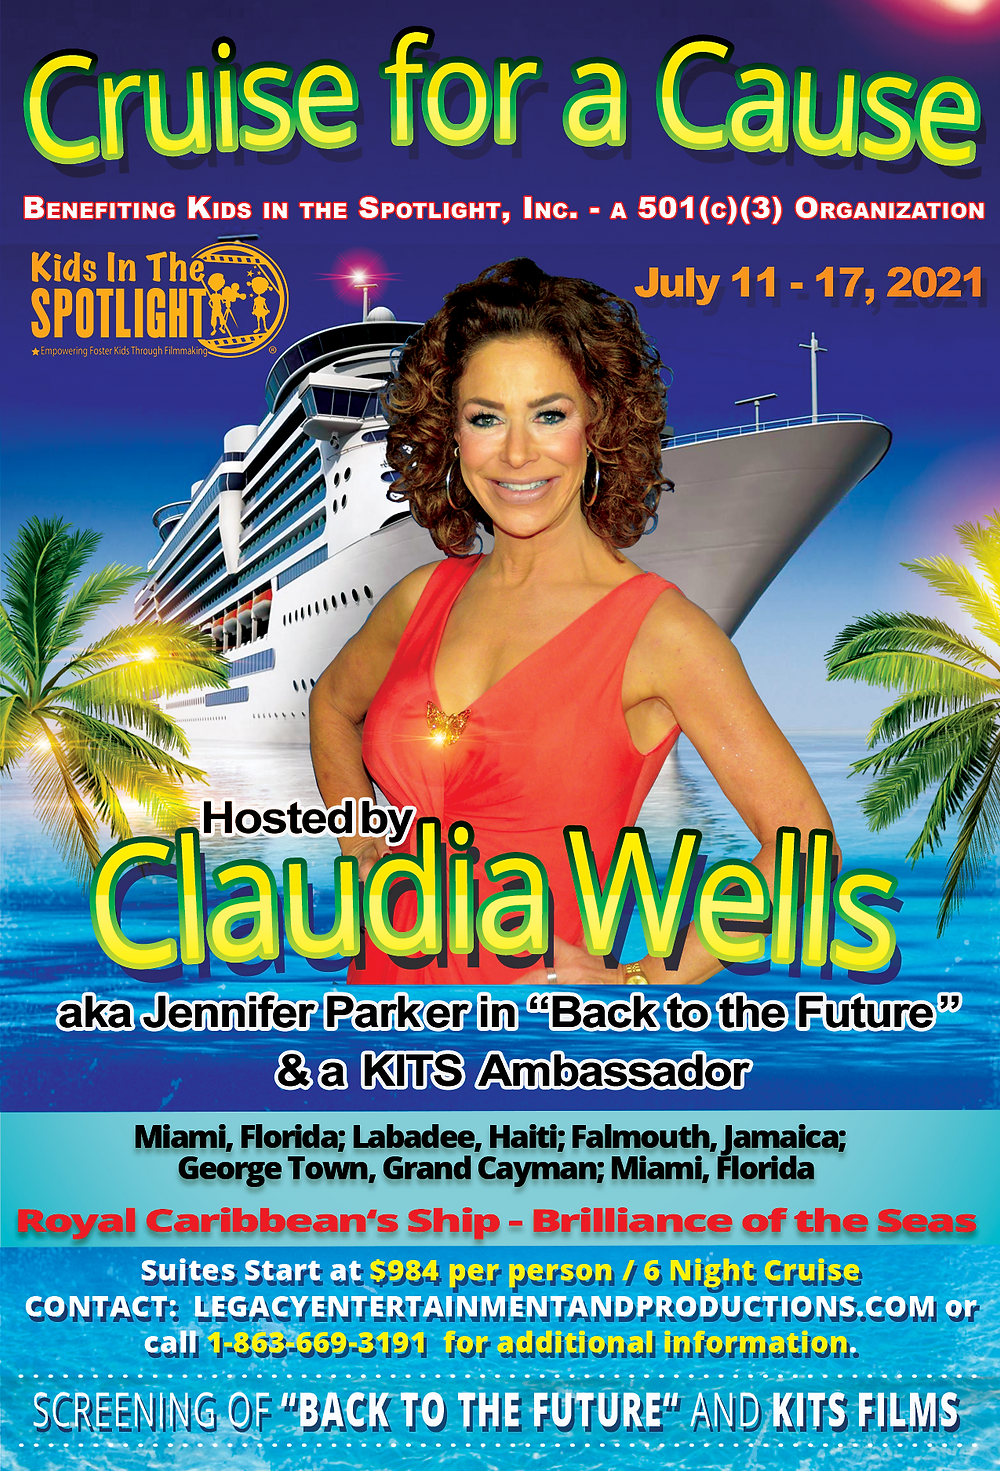 Cruise for a Cause Hosted by Claudia Wells